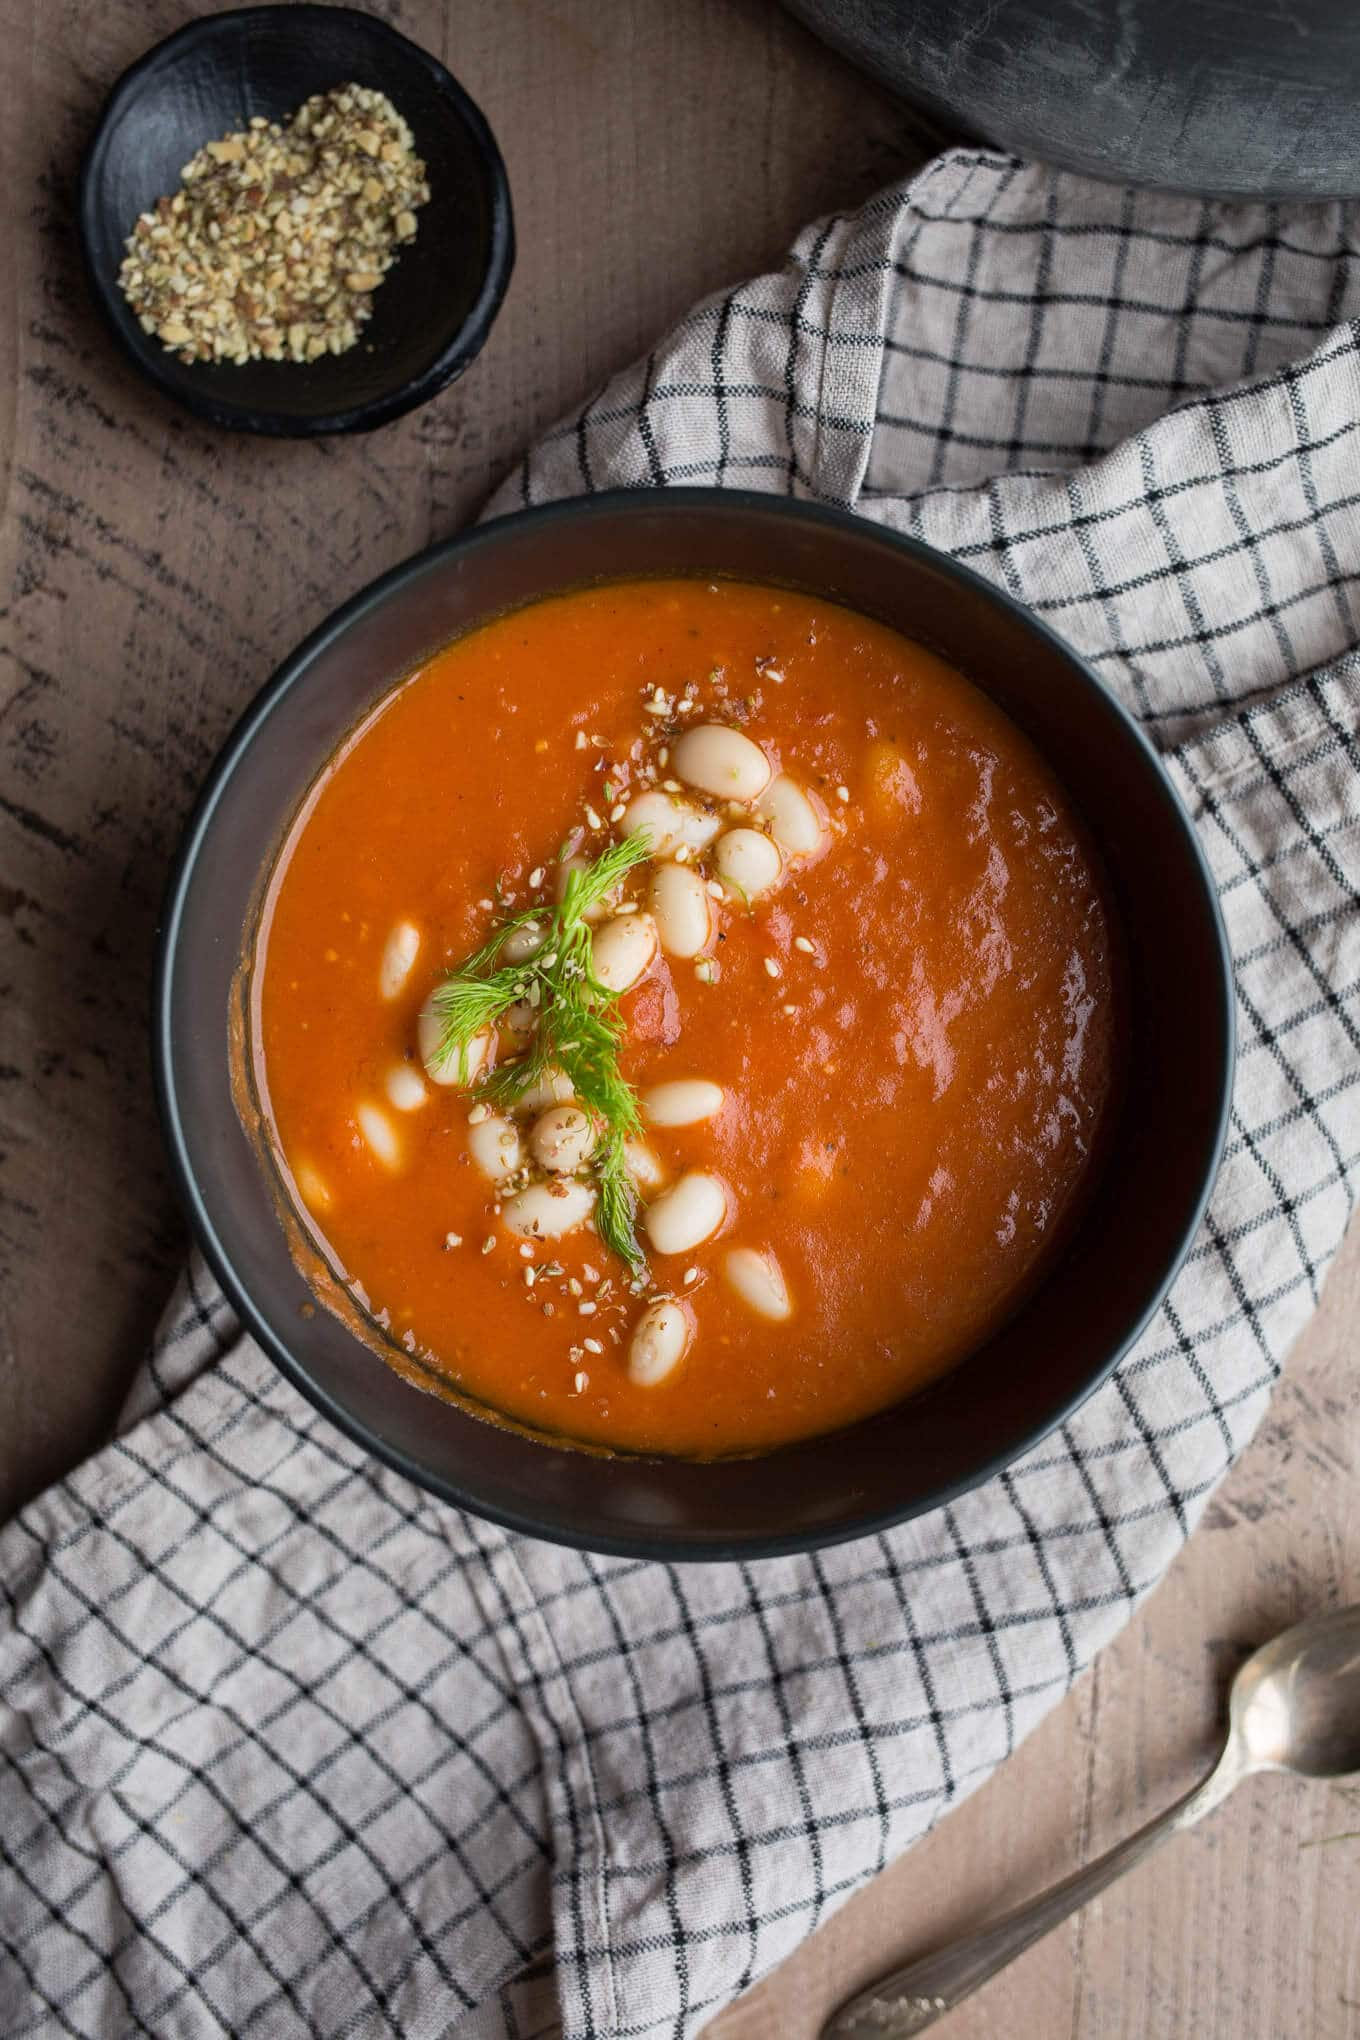 This Roasted Fennel and White Bean Tomato Soup recipe makes for an easy pantry meal. Pair it with salad, sandwiches, or enjoy on its own! Gluten-free, vegan.